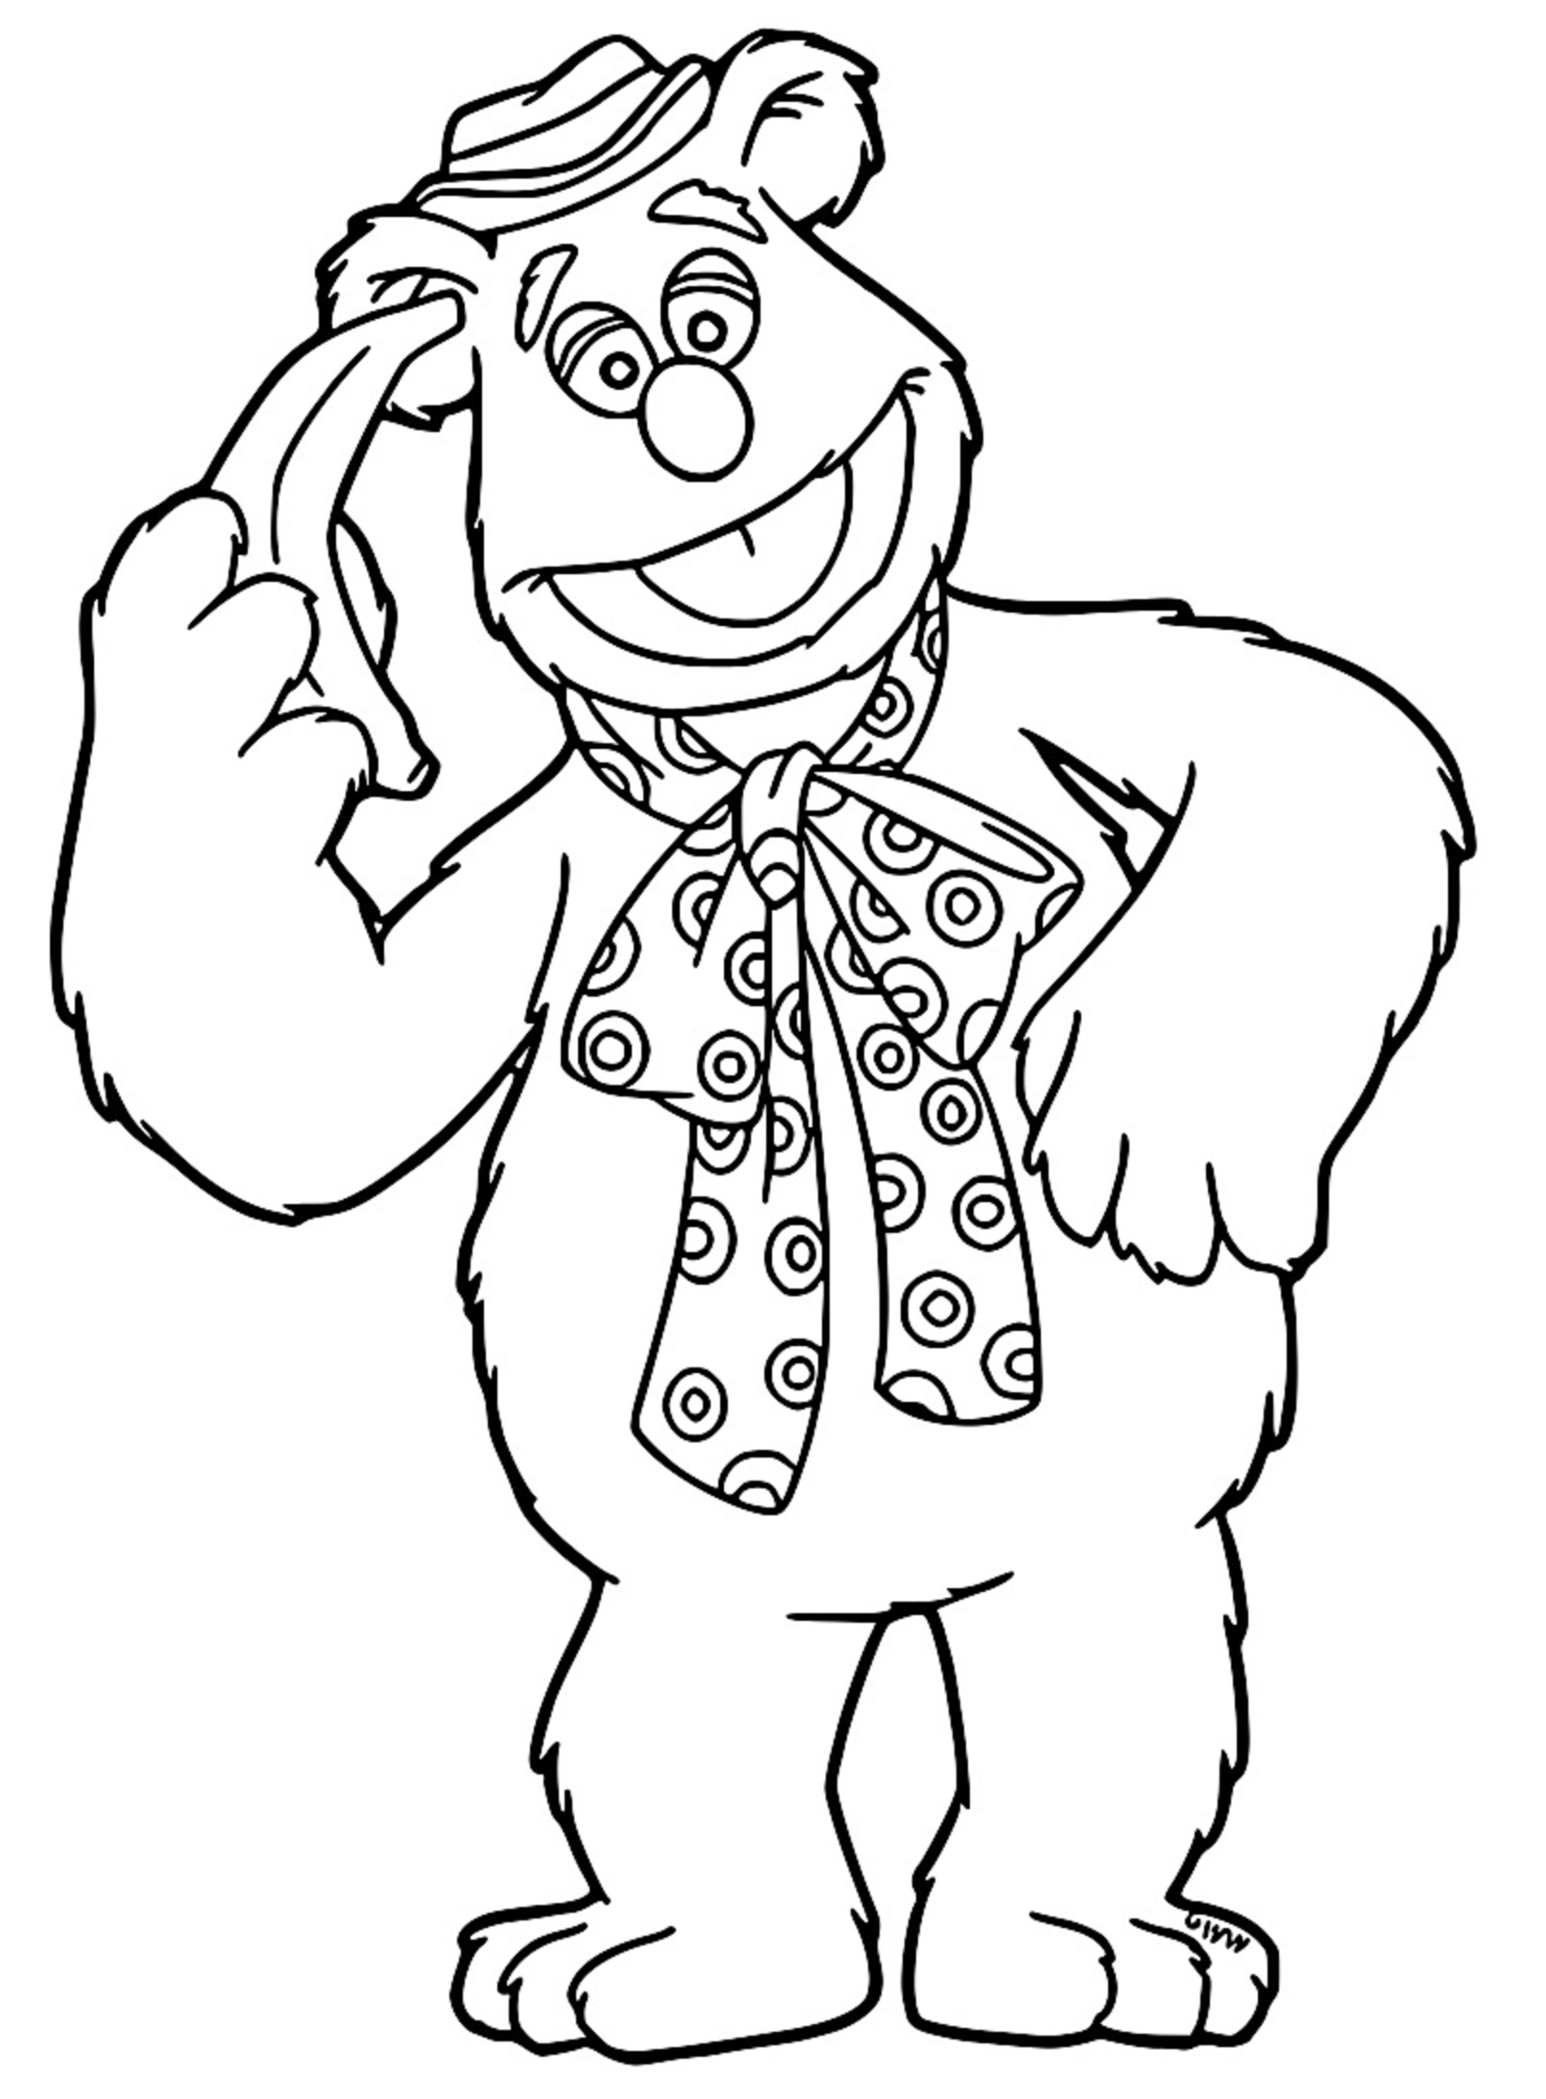 The Muppets fozzie Cartoon Coloring Page